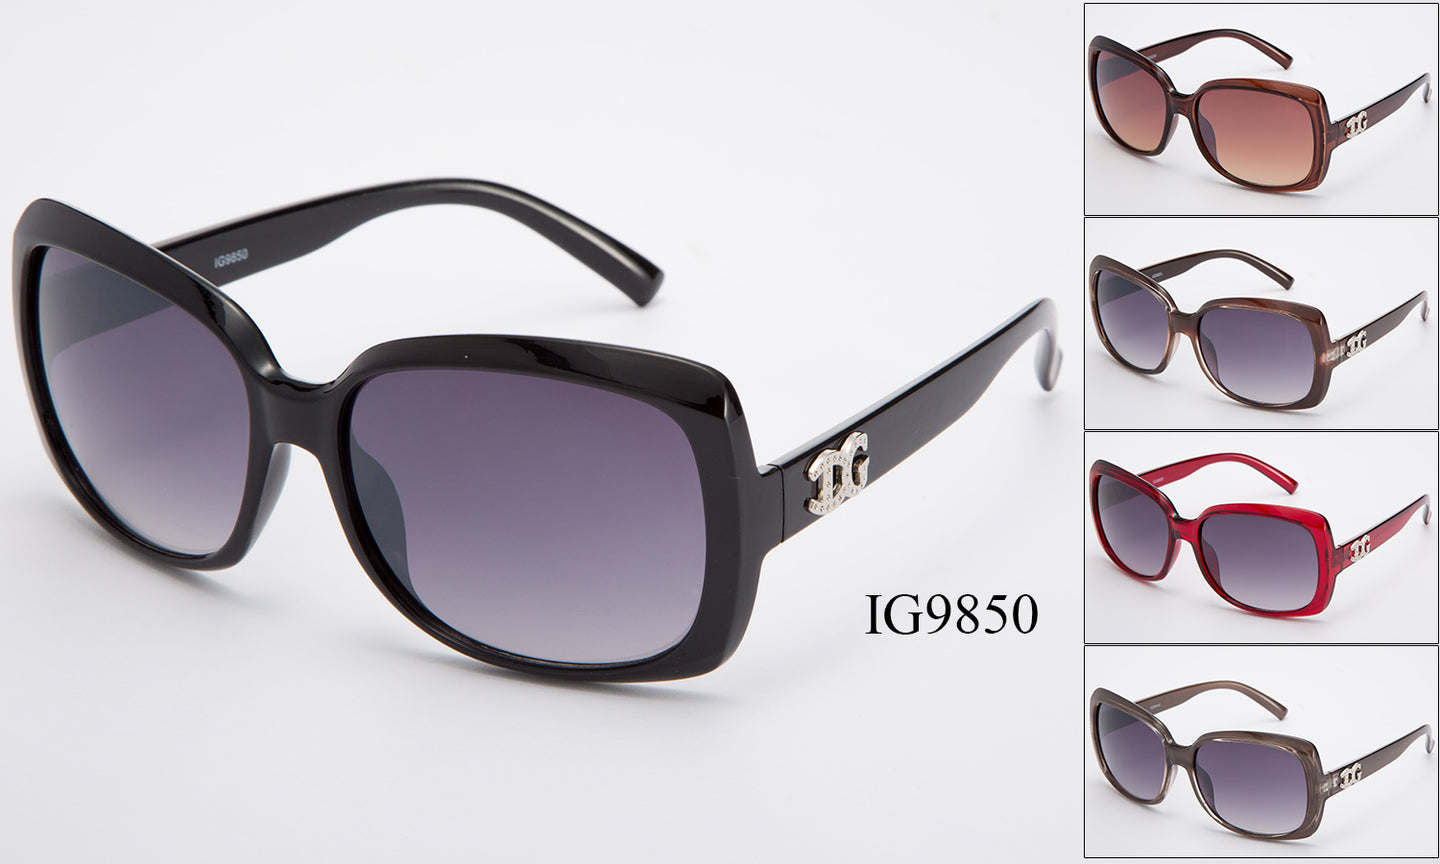 Womens Wholesale Fashion Big Lens Plastic Sunglasses 1 Dozen IG9850 - BuyWholesaleSunglasses.com